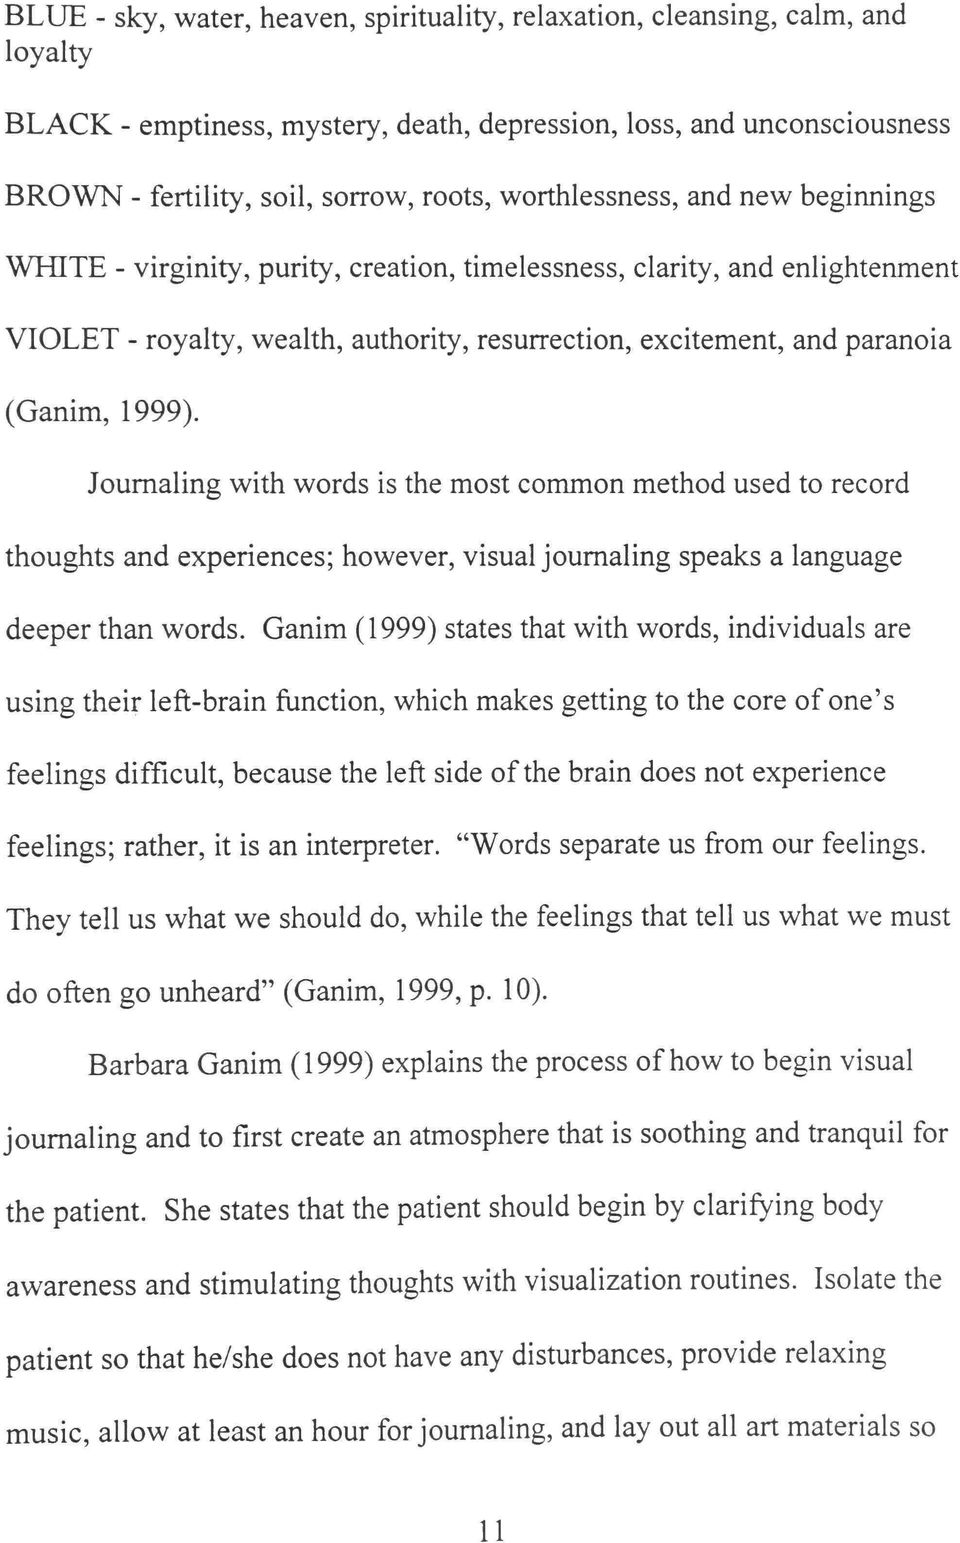 1999). Joumaling with words is the most common method used to record thoughts and experiences; however, visual joumaling speaks a language deeper than words.